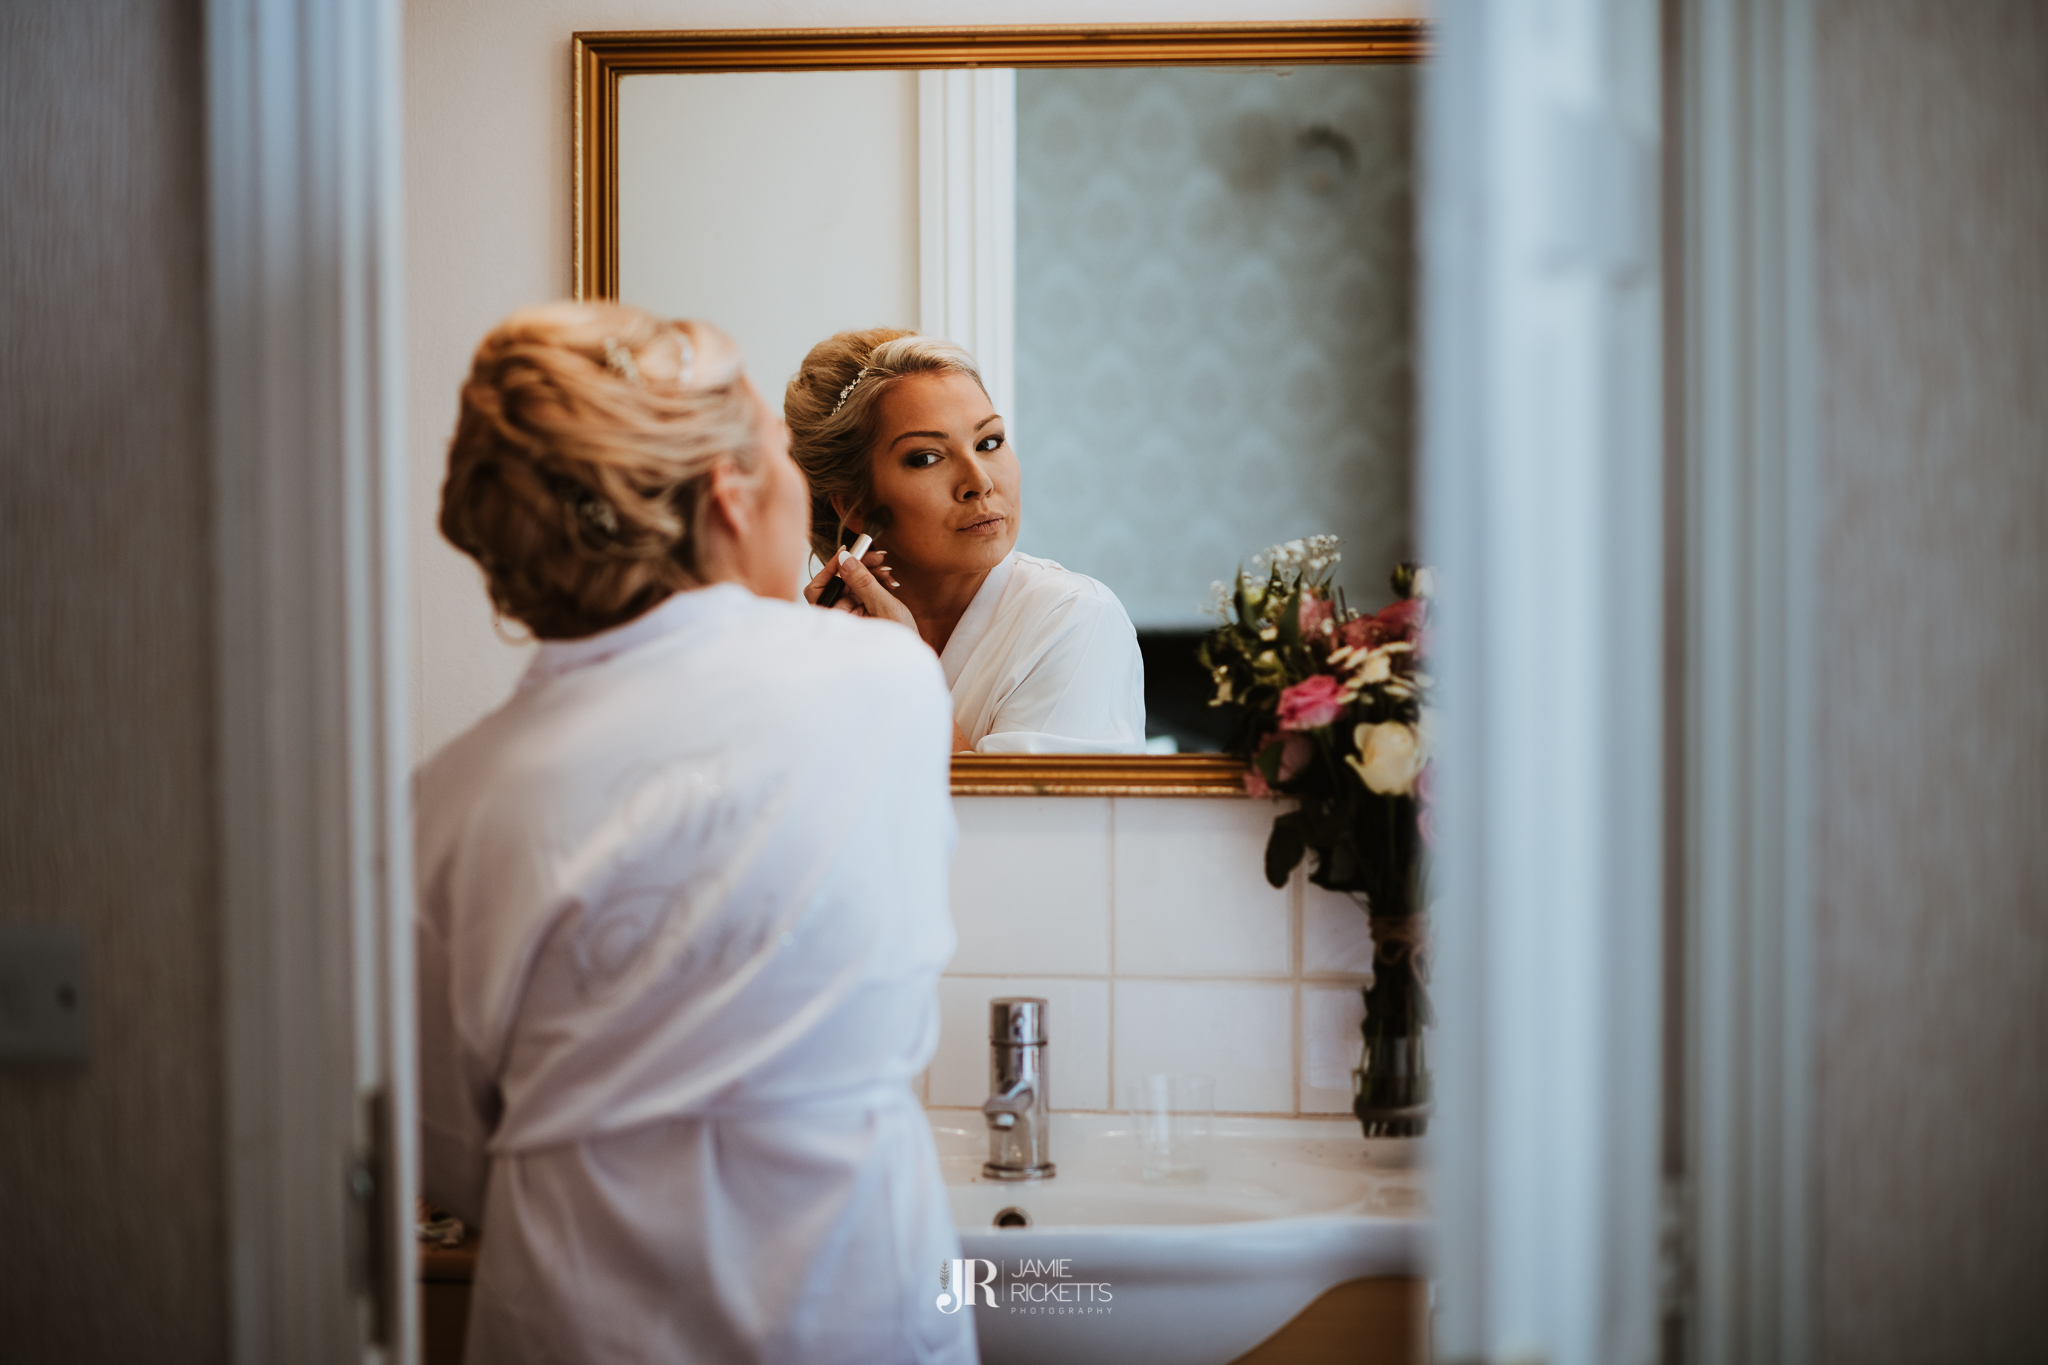 Wroxeter-Hotel-Wedding-Photography-In-Shropshire-By-Shropshire-Wedding-Photographer-Jamie-Ricketts-024.JPG